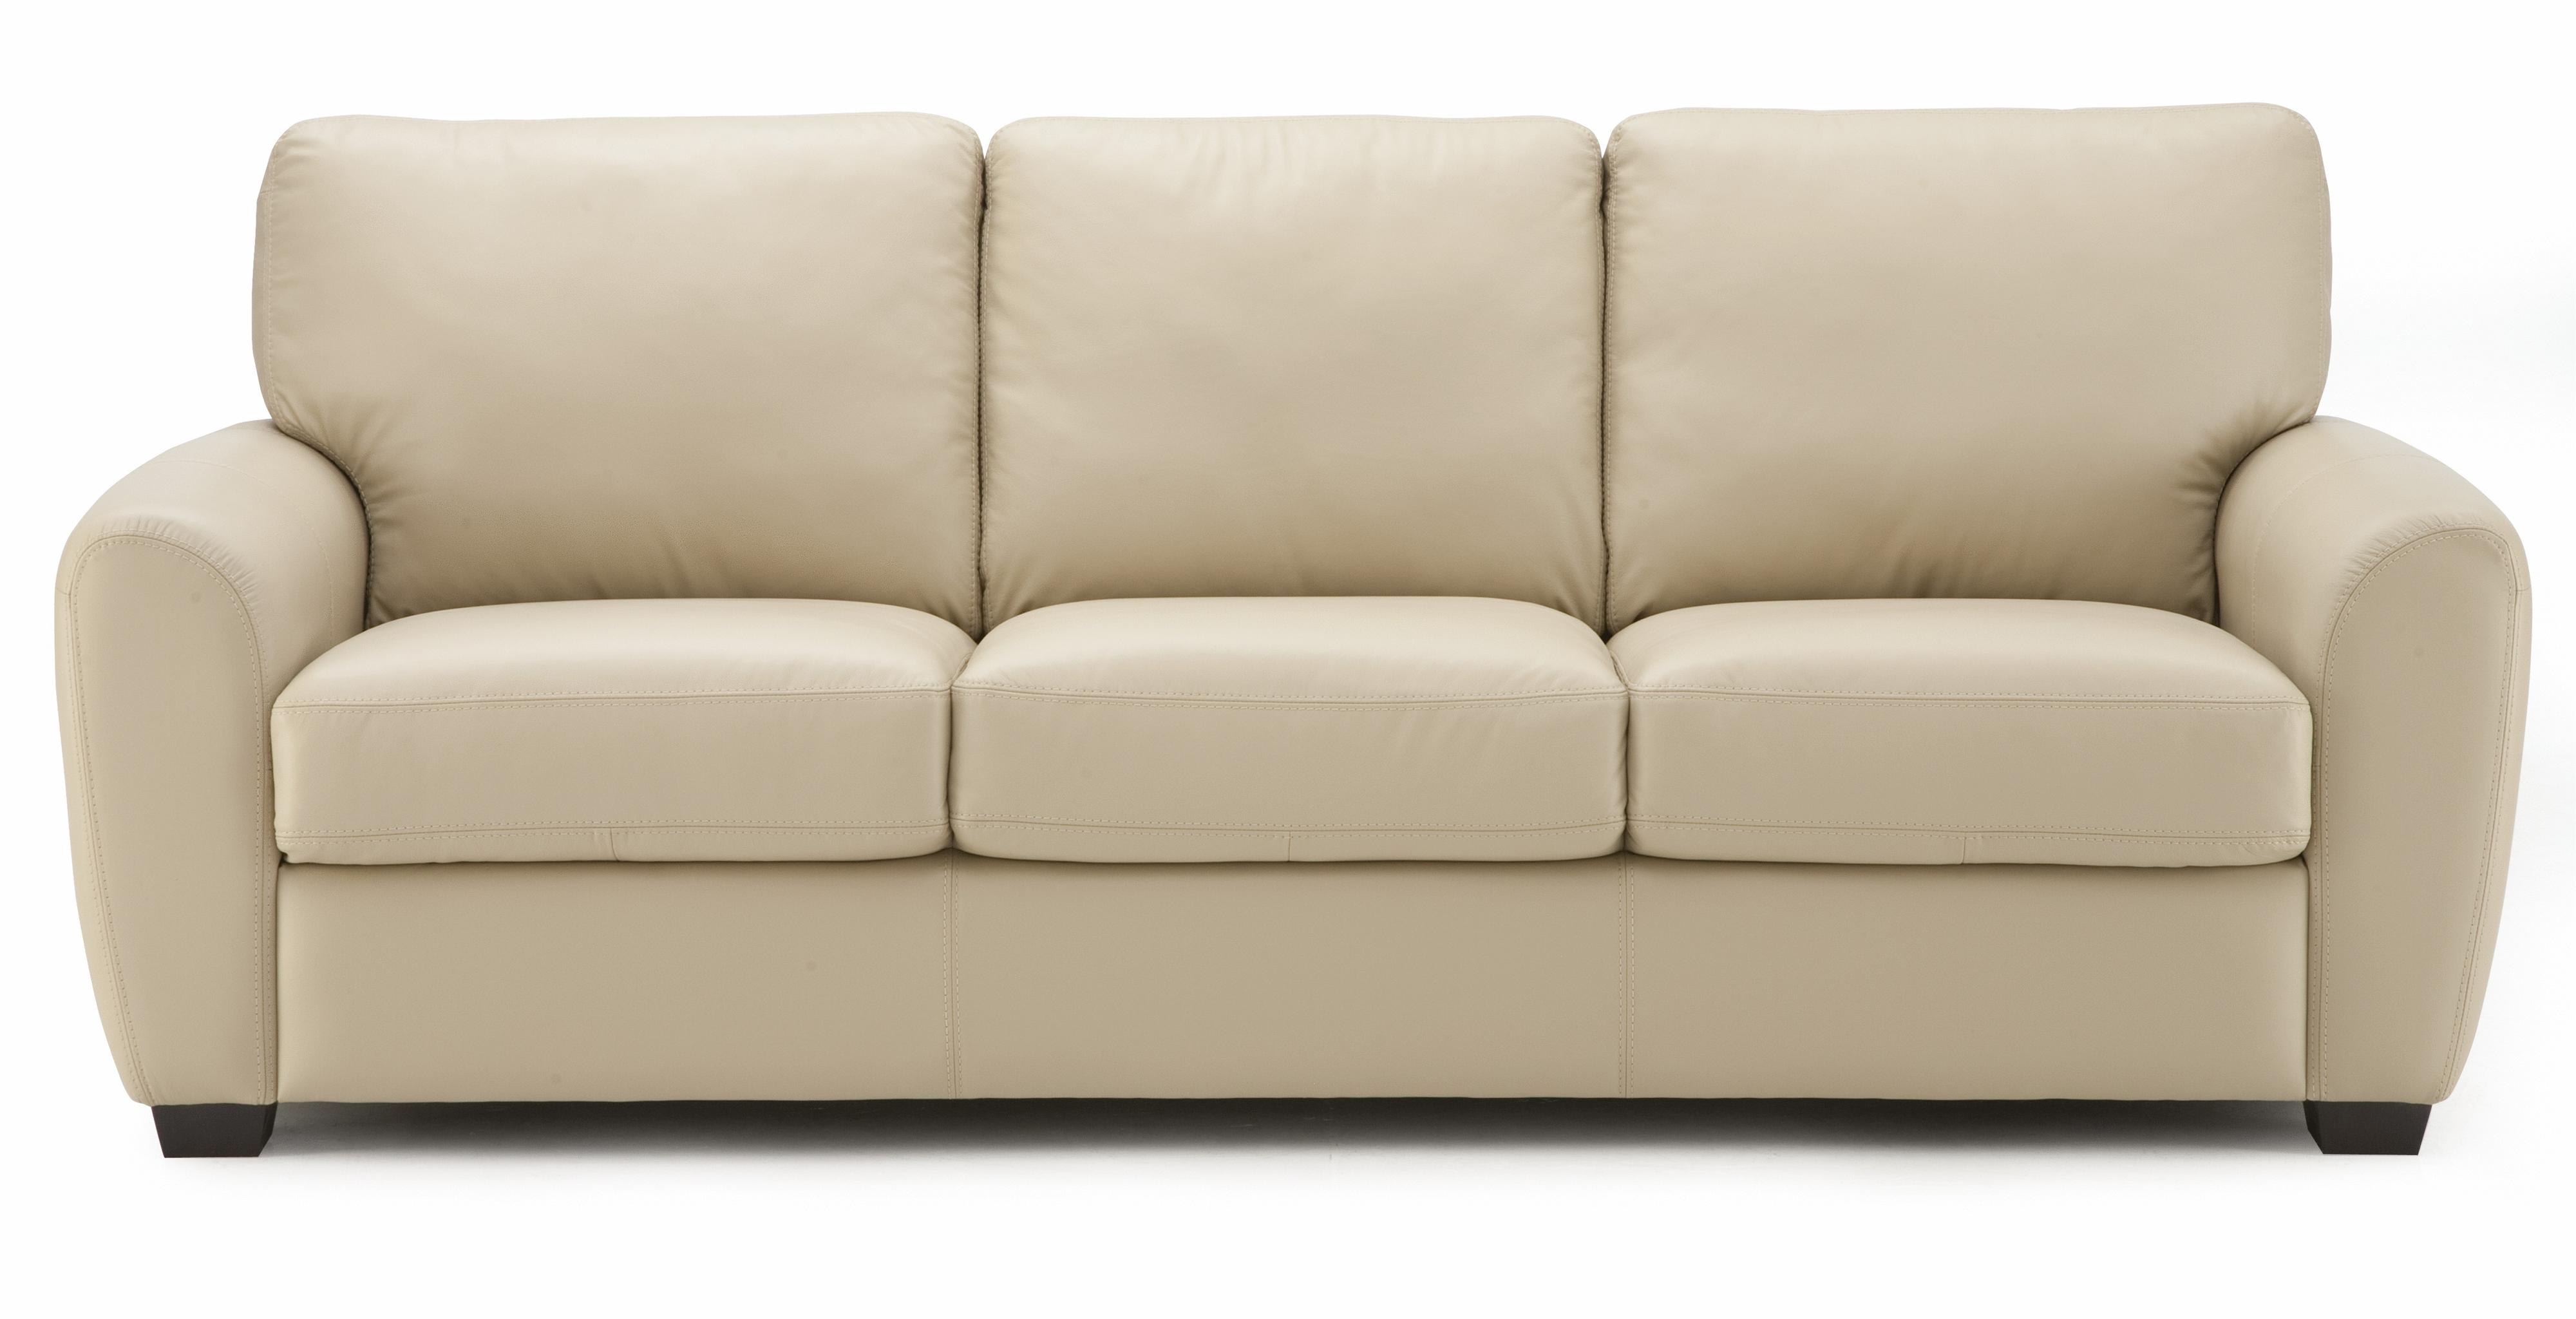 Connecticut 3-Seater Stationary Sofa by Palliser at SuperStore